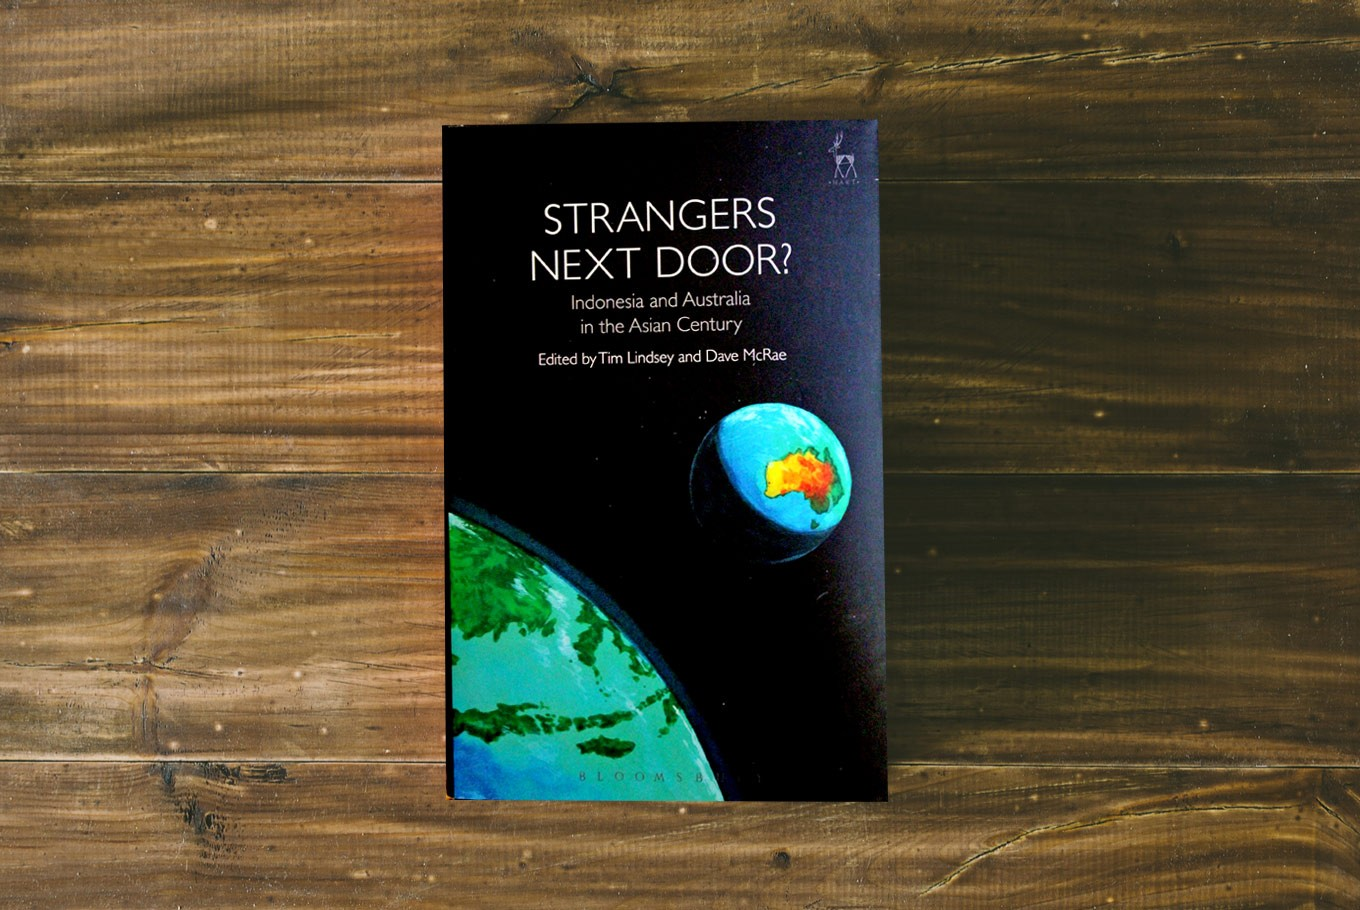 Strangers next door?': Can these neighbors ever hit it off? - Books